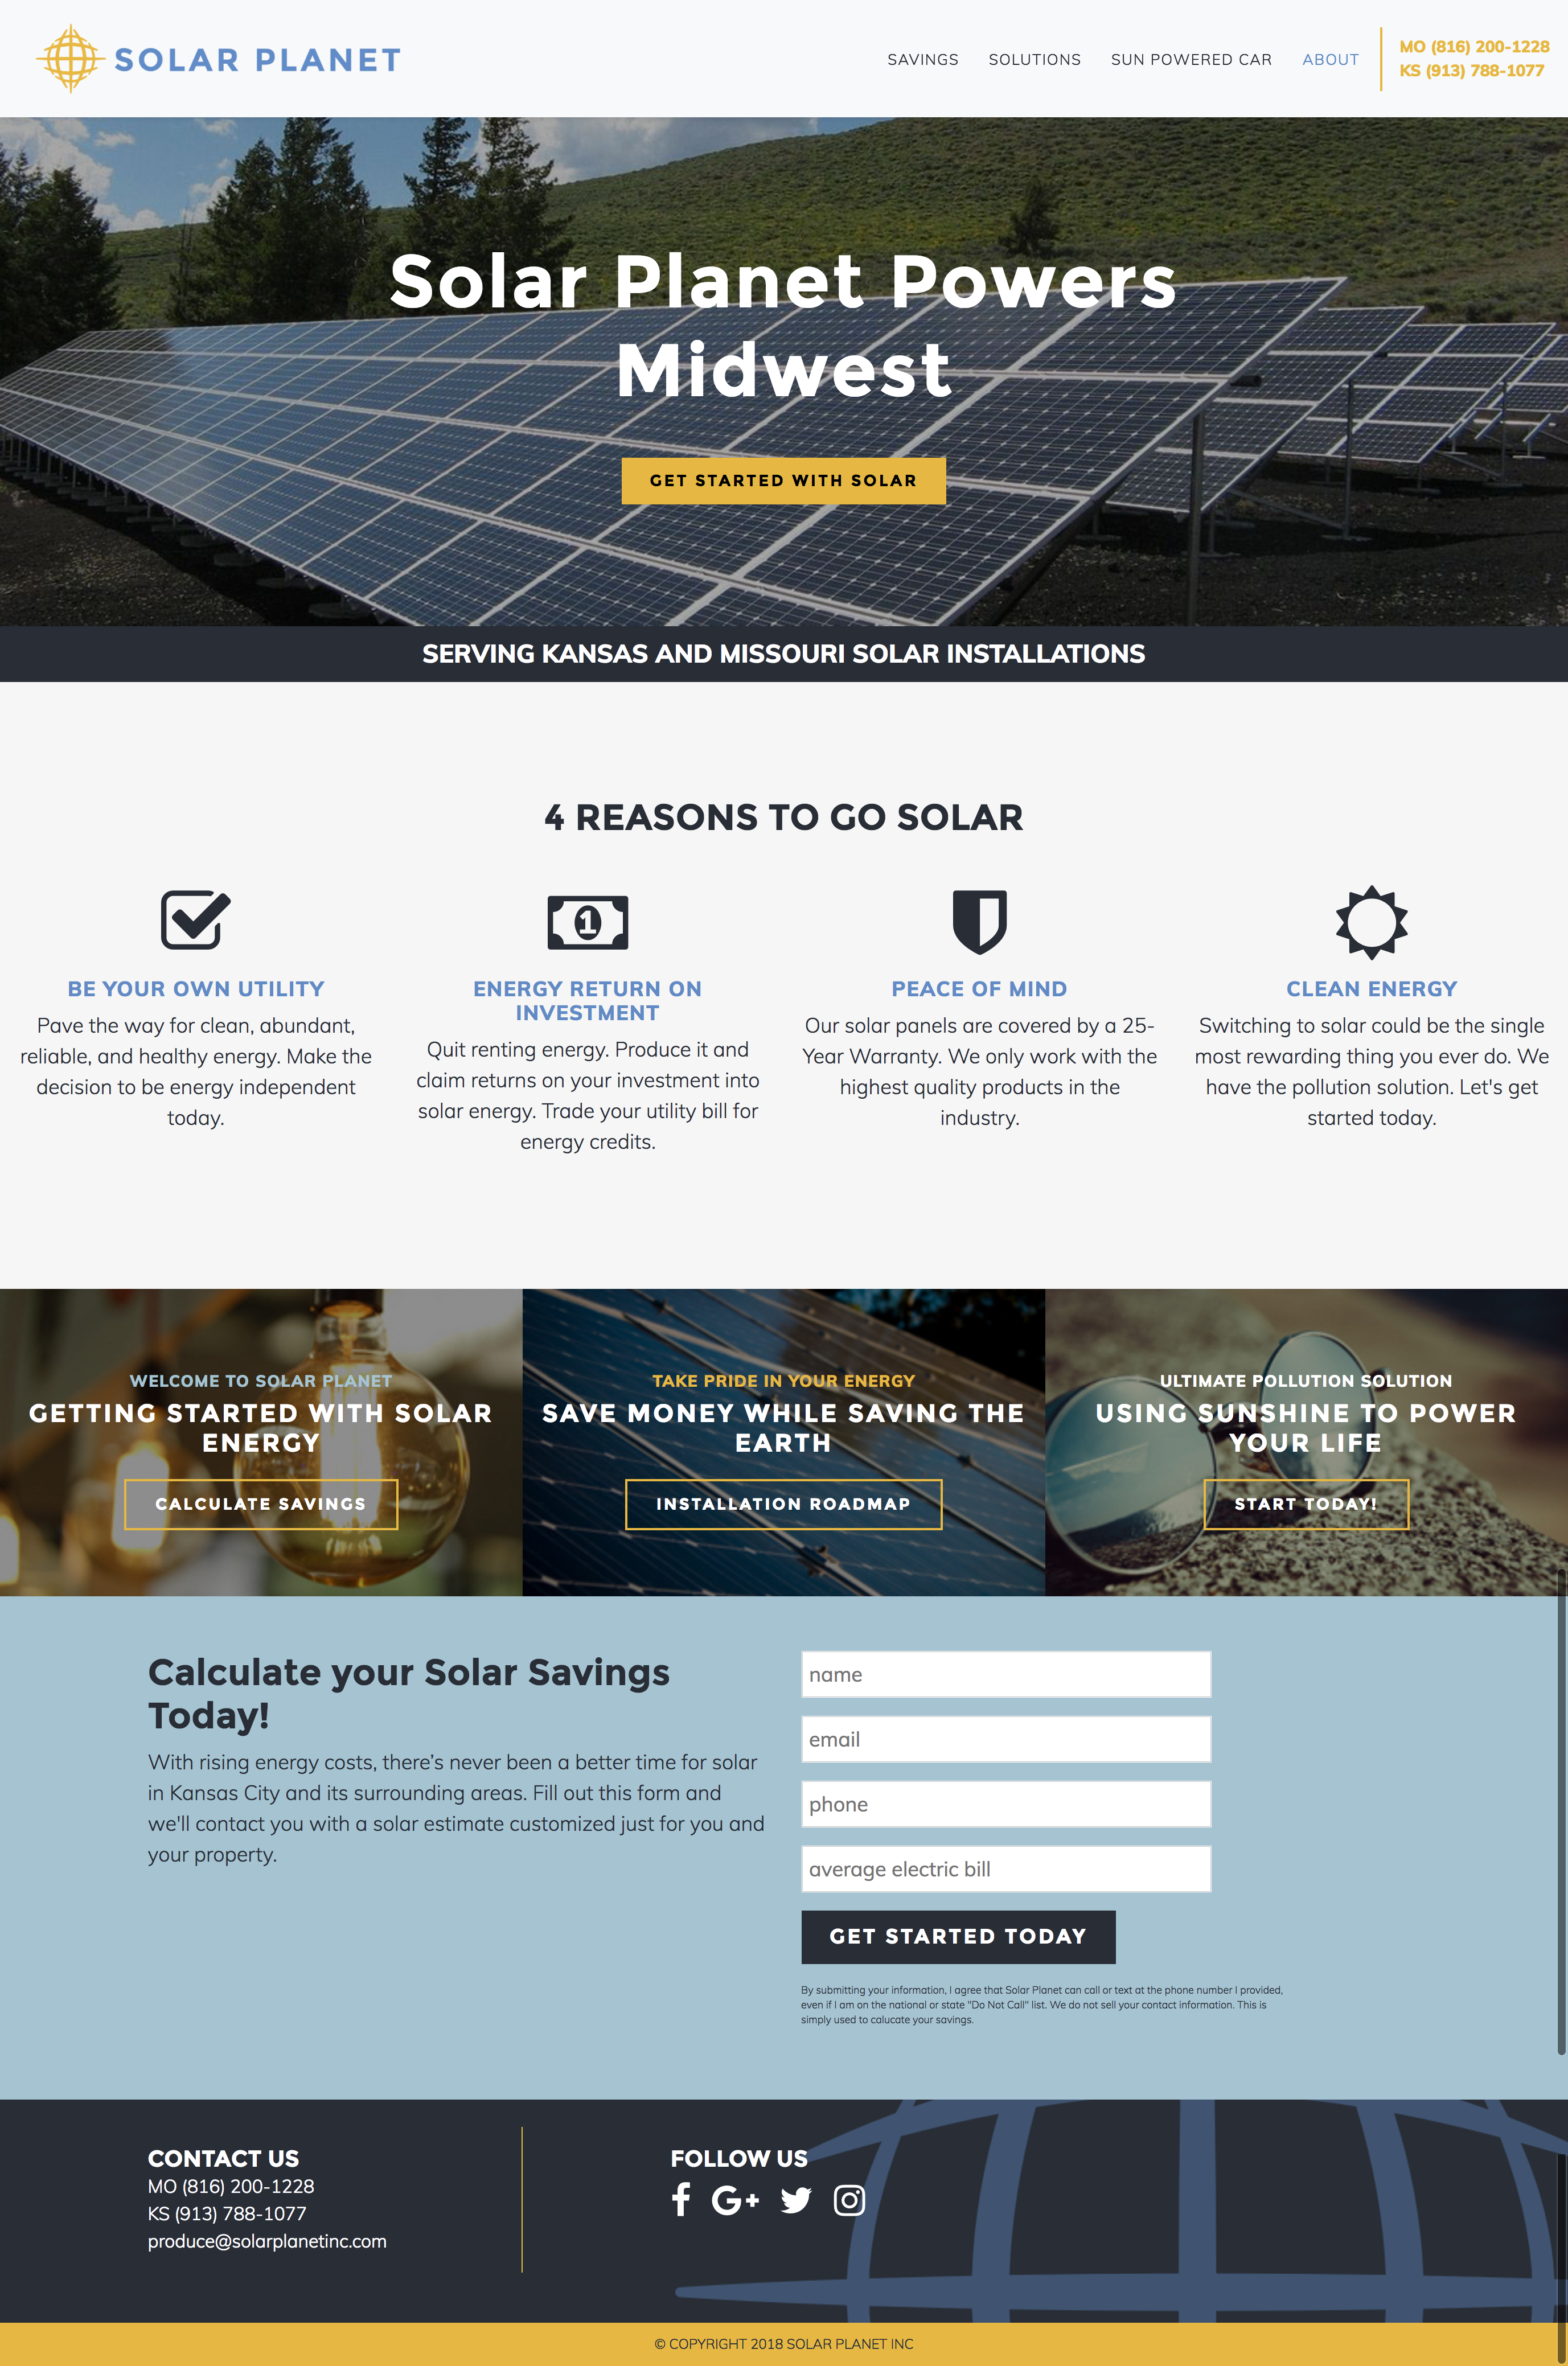 Solar Planet website home page